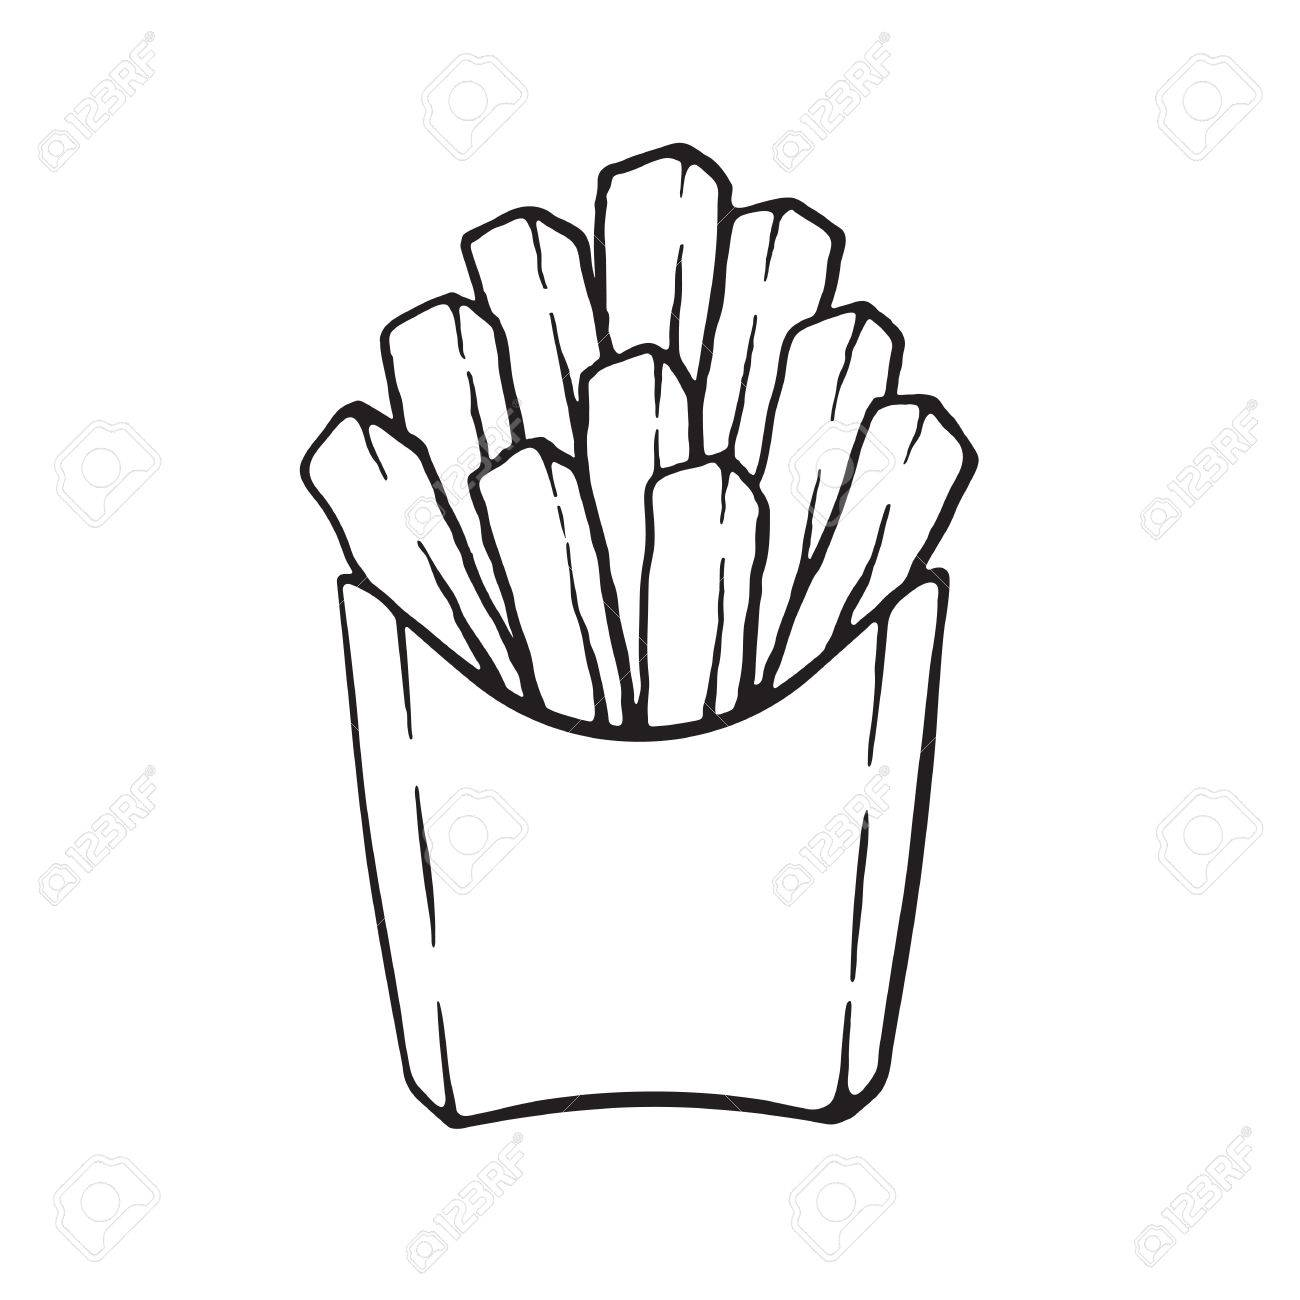 Vector Illustration Hand Drawn Doodle Of French Fries In A Paper